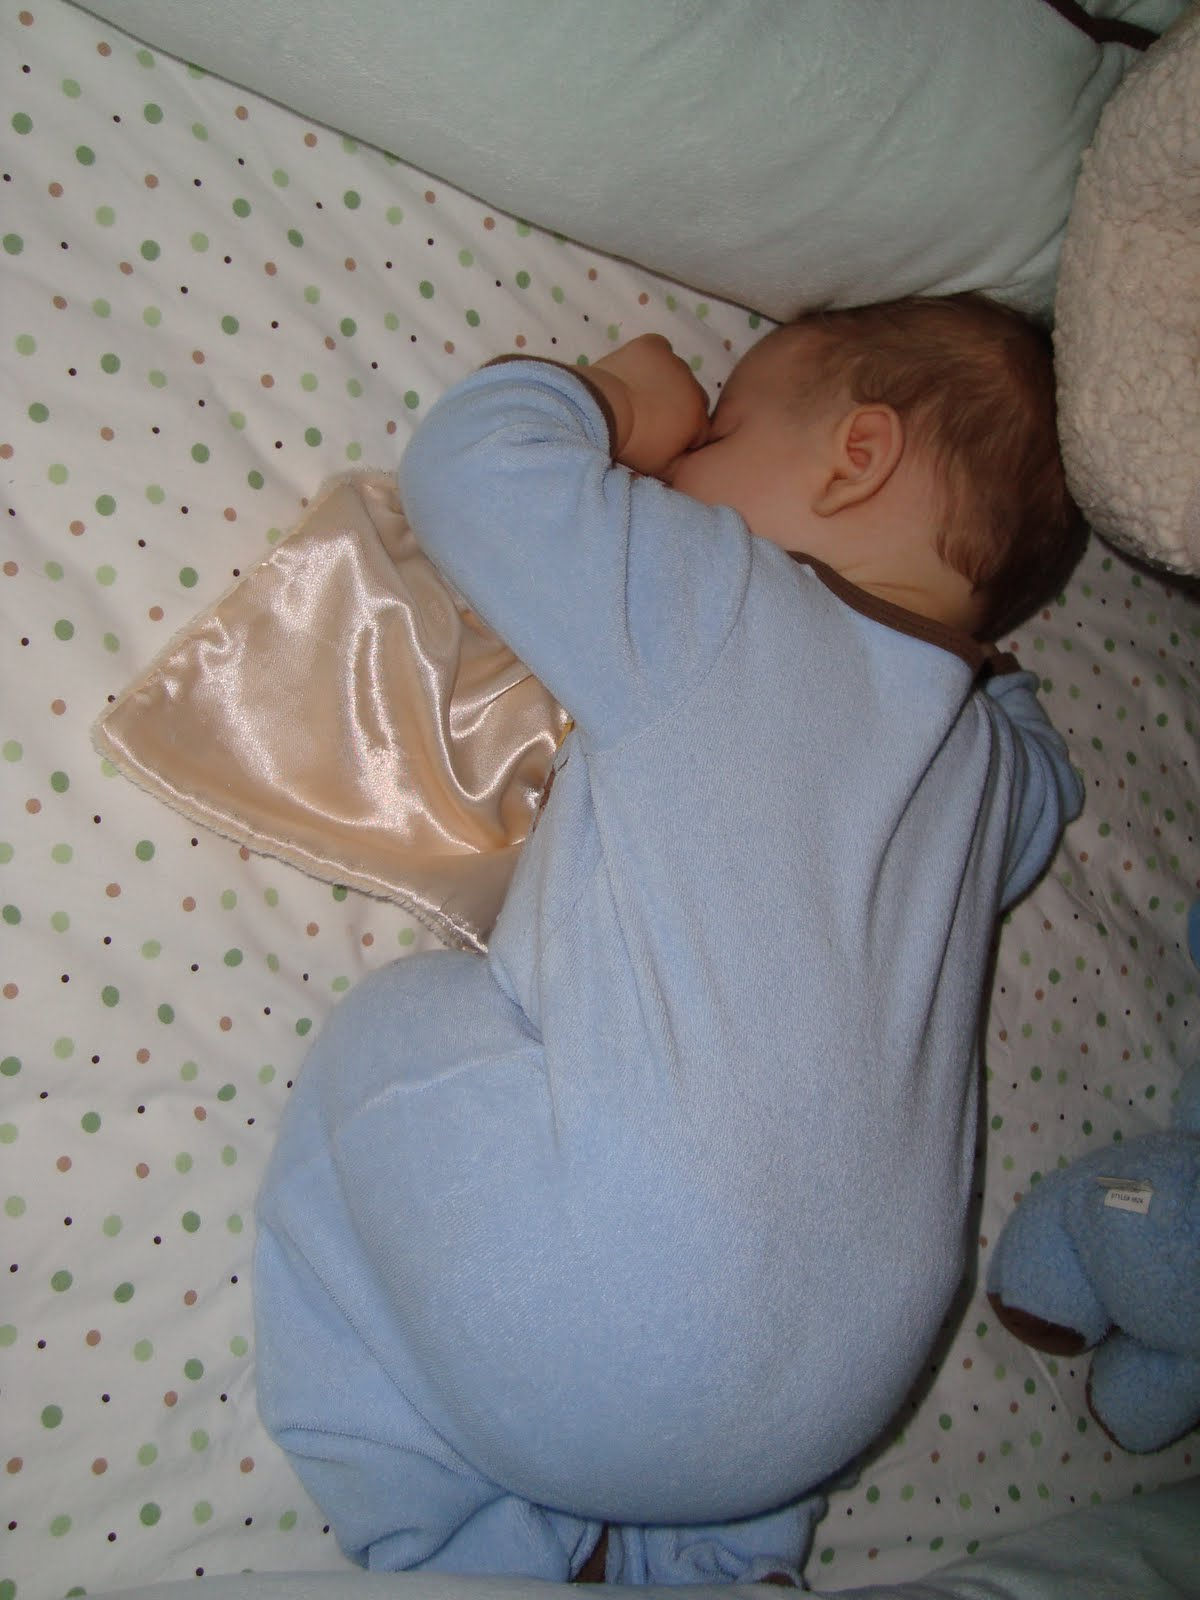 Baby Sleeping Up On Knees : sleeping, knees, Everything, About, Ethan:, Sleeping, Baby!